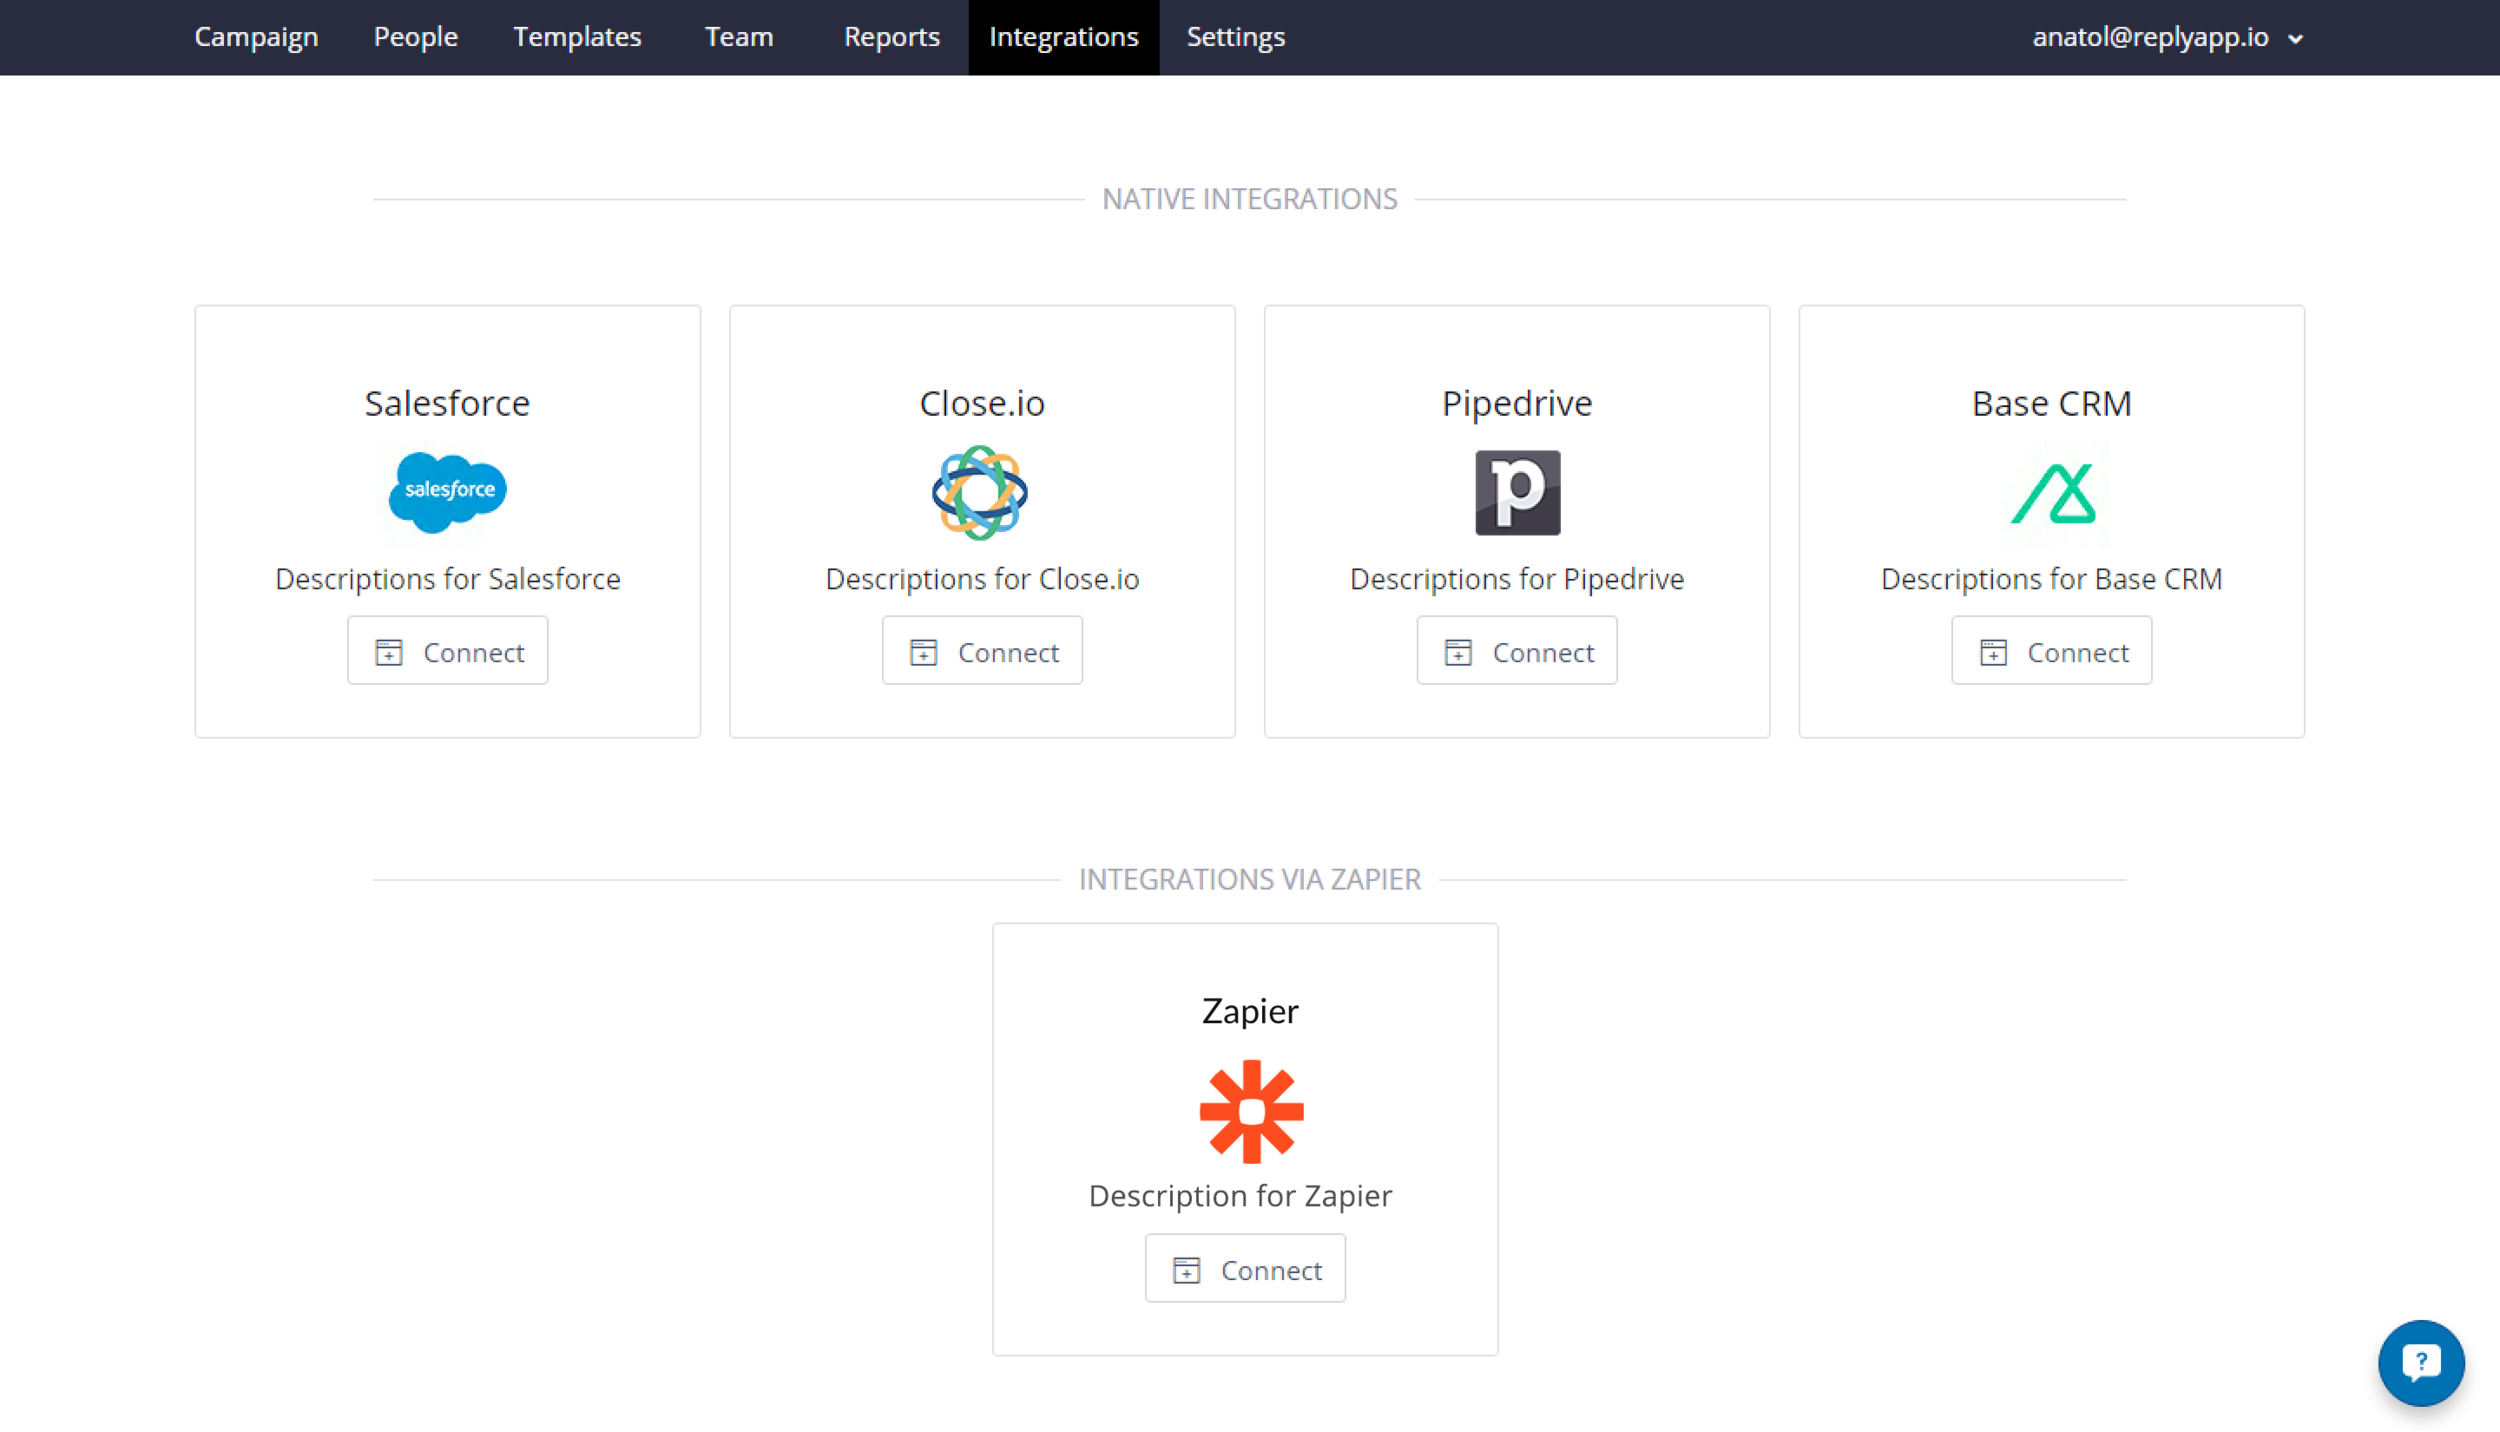 CRM Integration - Make use of our native integrations with the most popular CRMs out there or set up your own triggers with more than 400 applications and services via Zapier.